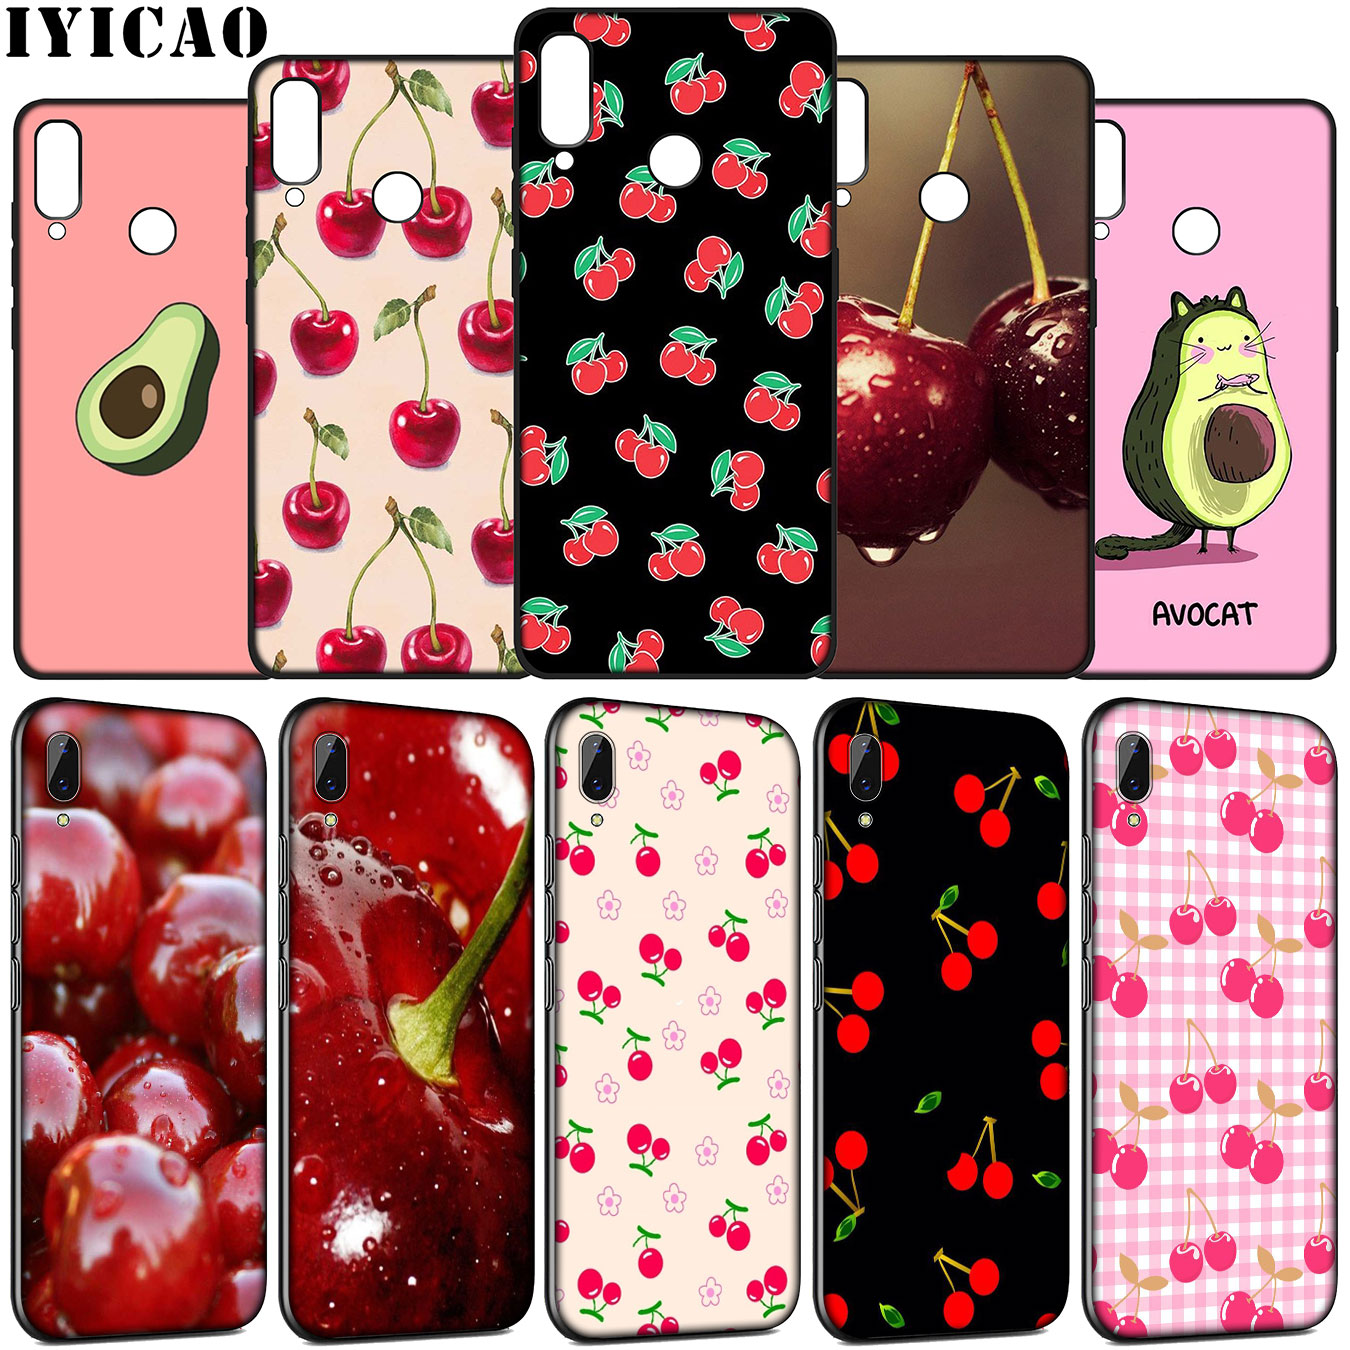 Cherry <font><b>summer</b></font> fruit Soft <font><b>Case</b></font> for <font><b>Huawei</b></font> Y9 Y7 <font><b>Y6</b></font> Prime 2019 <font><b>2018</b></font> Honor view 20 8C 8X 8 9 9X 10 Lite 7C 7X 7A Pro image